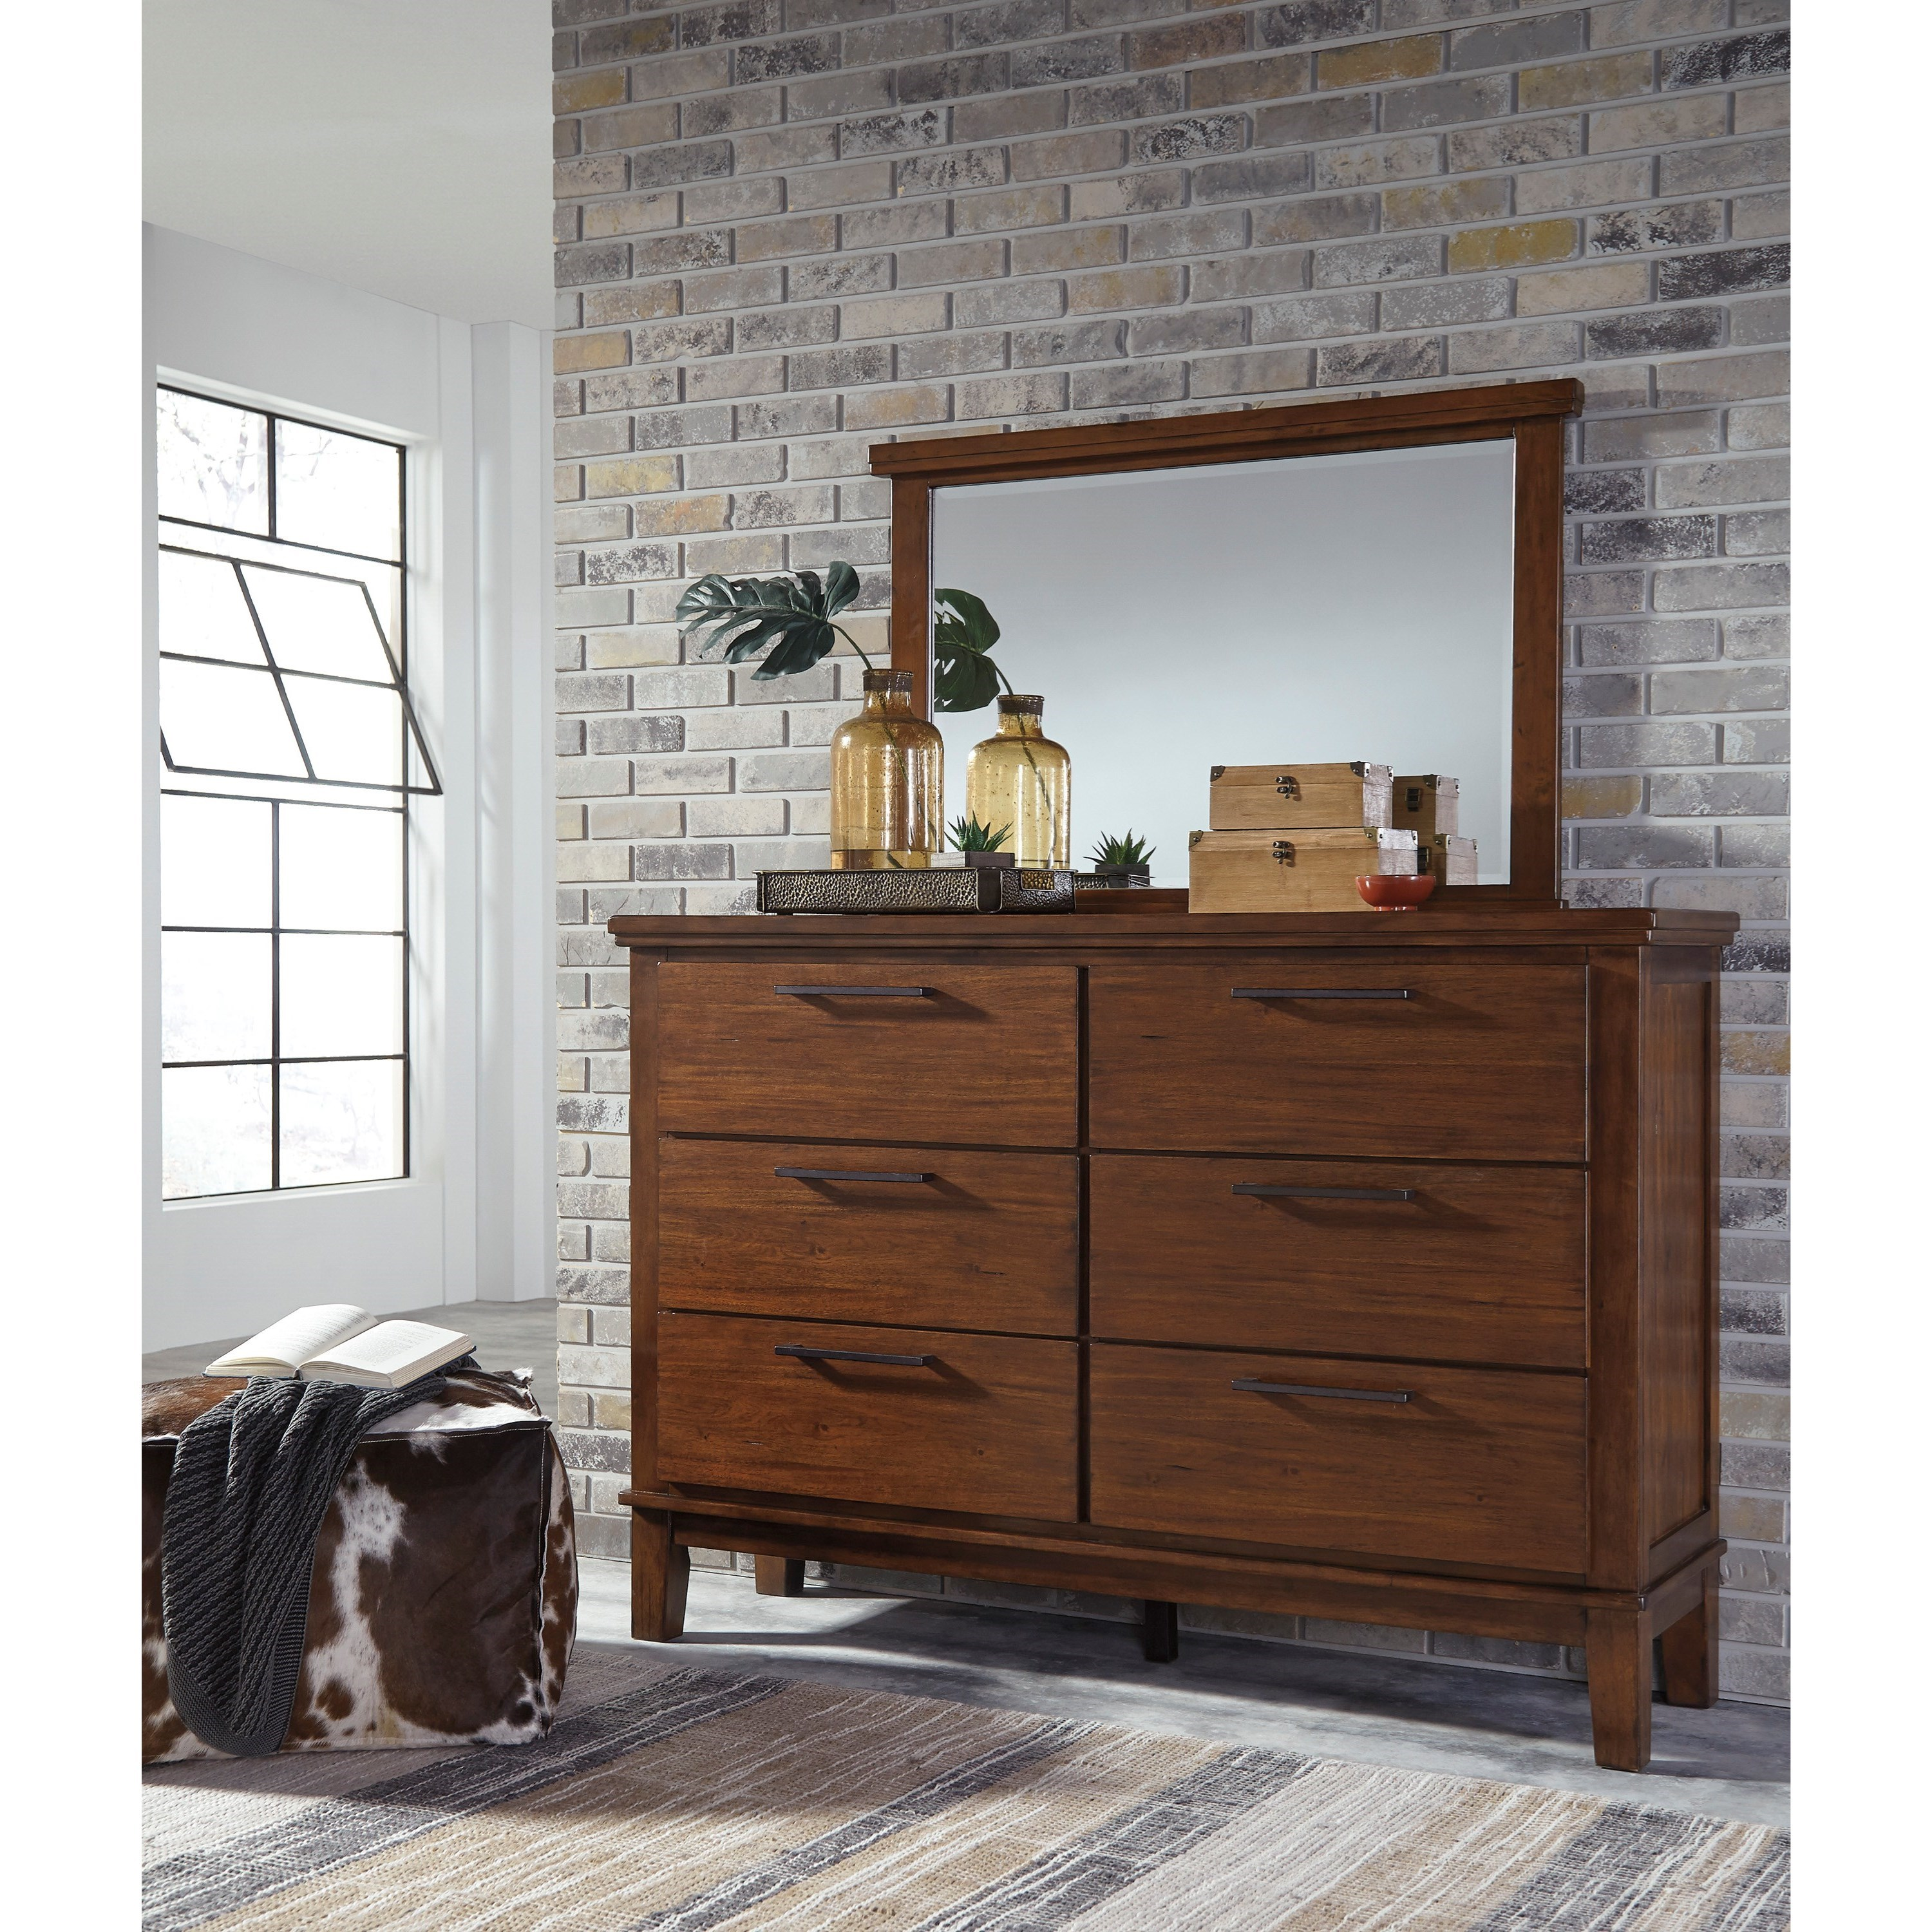 Signature design by ashley ralene dresser with contemporary bar pulls bedroom mirror royal for Ashley furniture ralene bedroom set